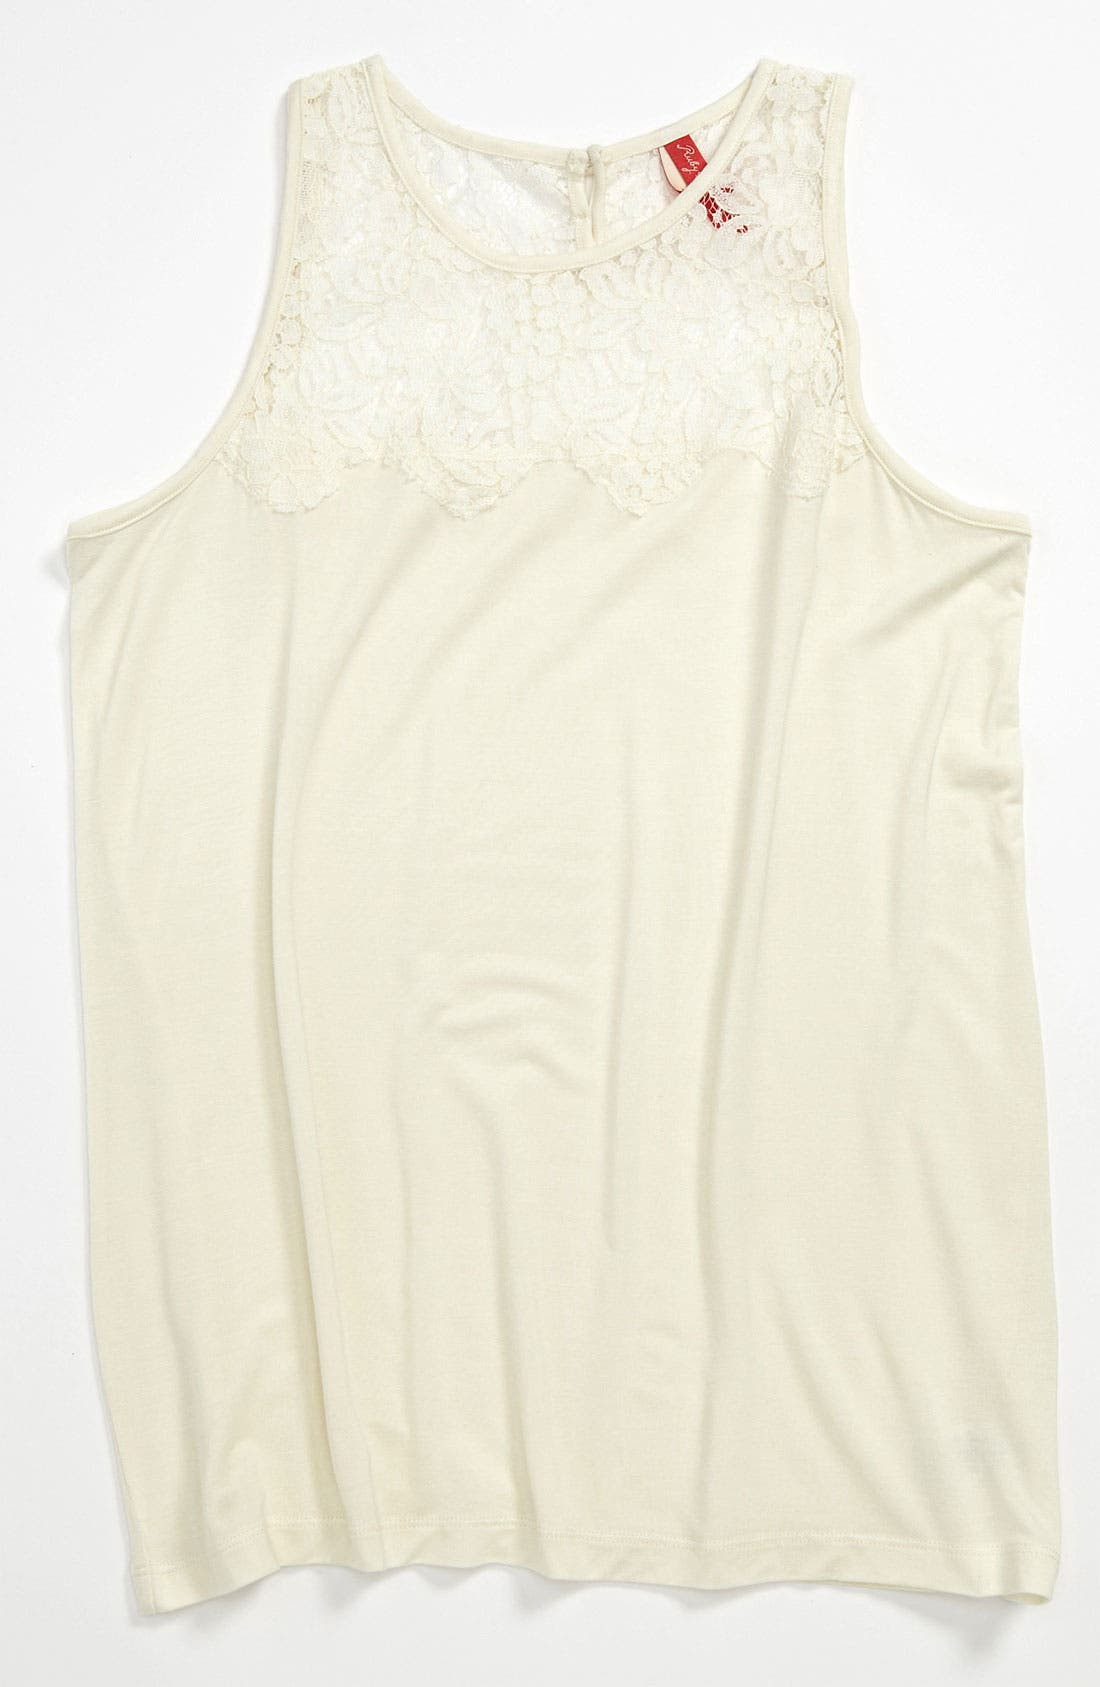 Main Image - Ruby & Bloom 'Genevieve' Tank Top (Big Girls)